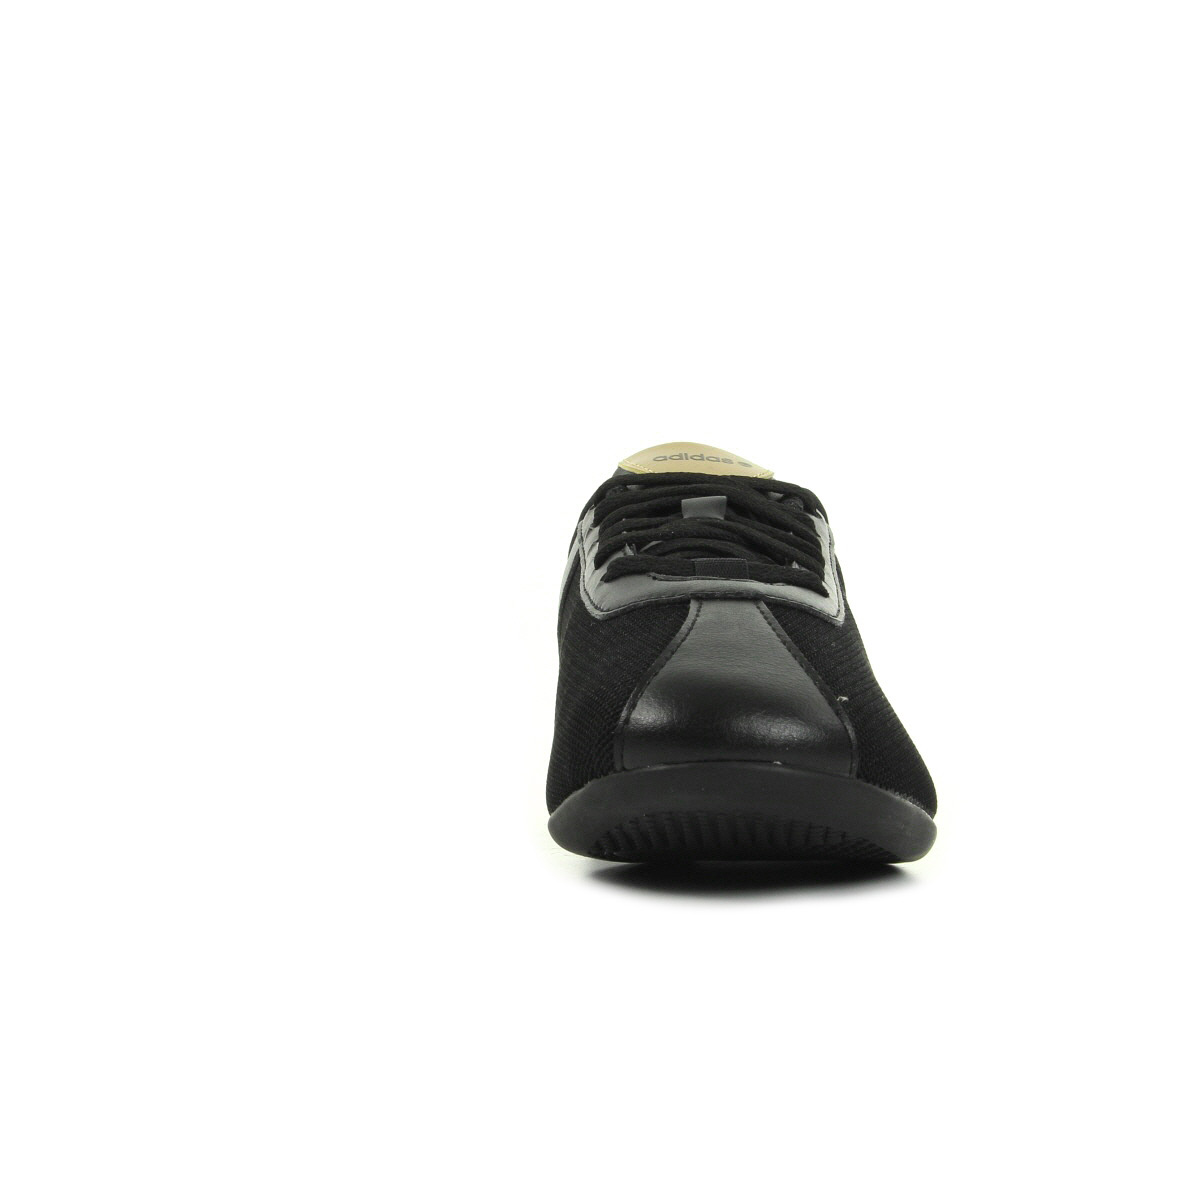 CHAUSSURES BASKETS ADIDAS Neo femme Motion W taille Noir Noire Synthétique